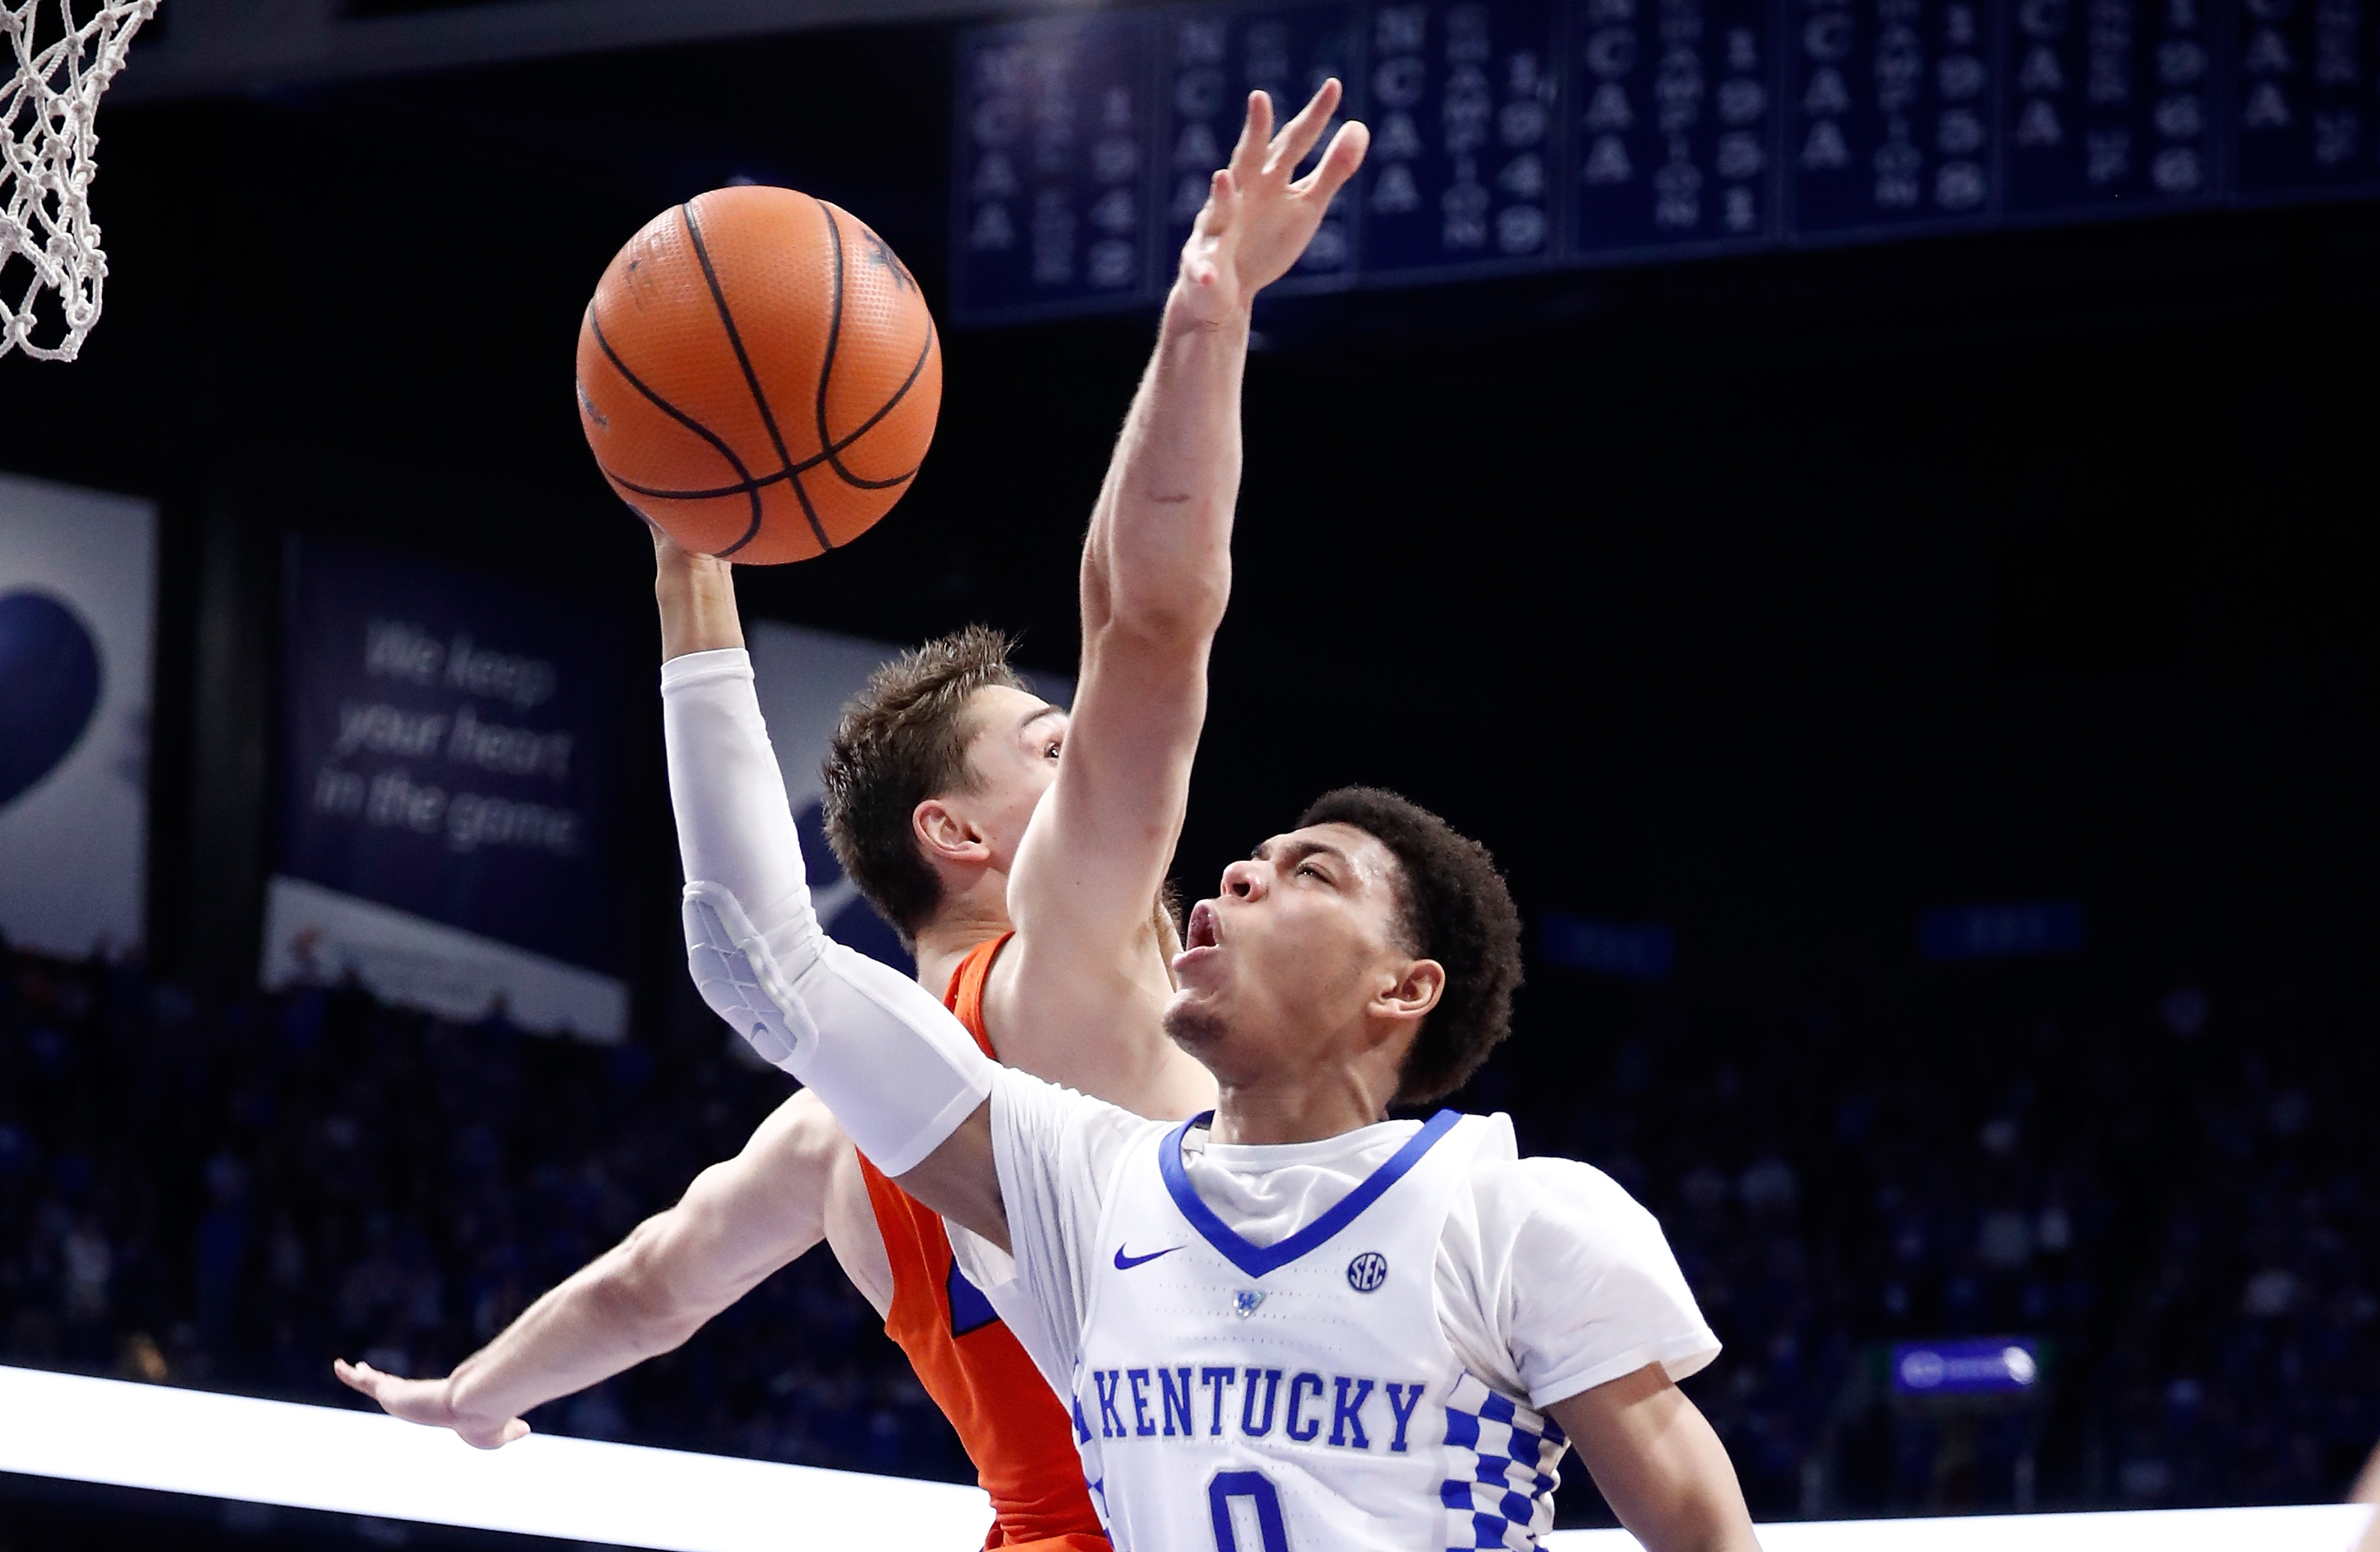 Kentucky ends losing skid against Mississippi State